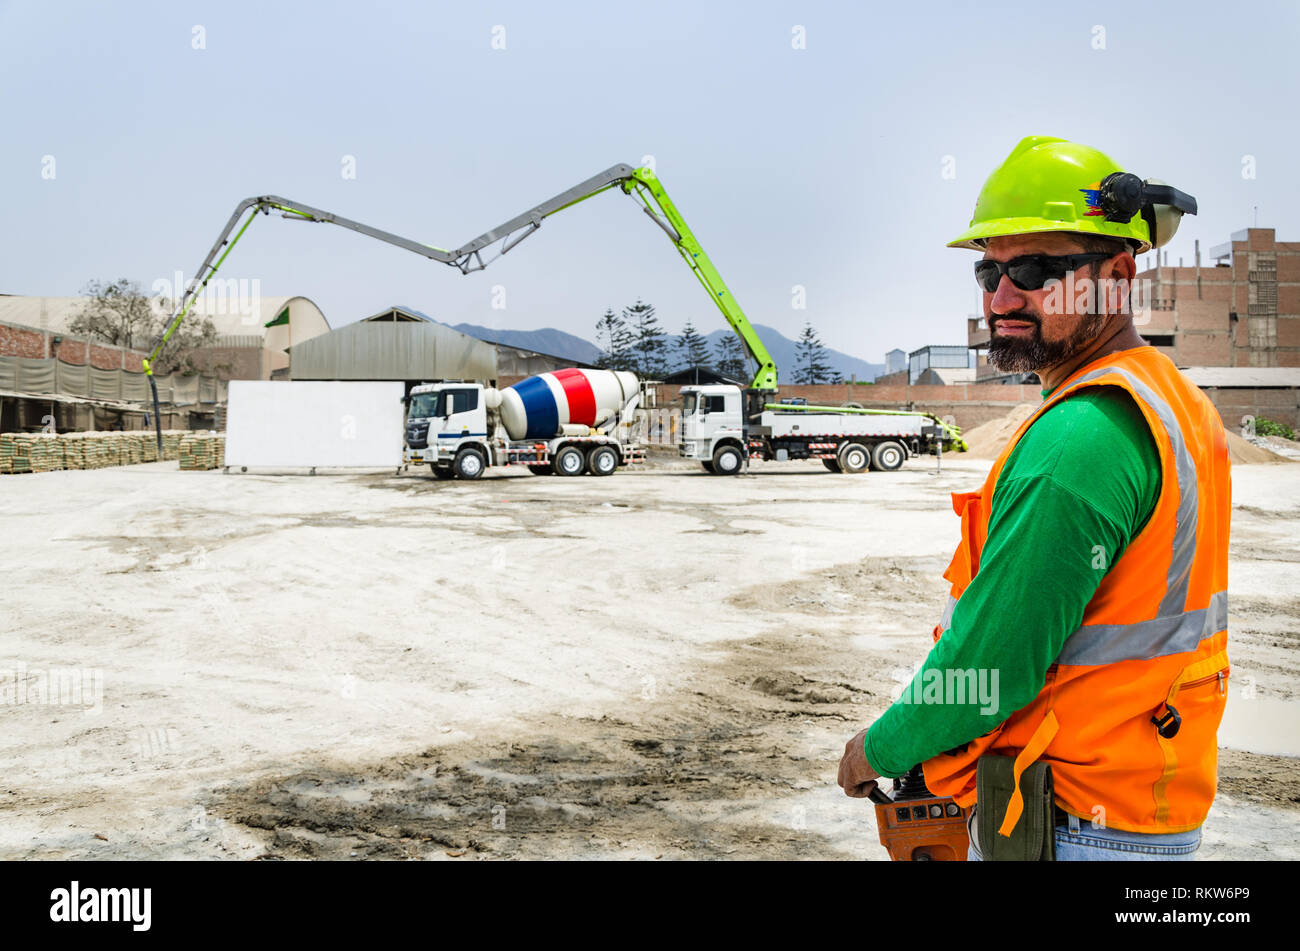 Concrete pump operator with remote control for boom pump truck at construction site. Stock Photo